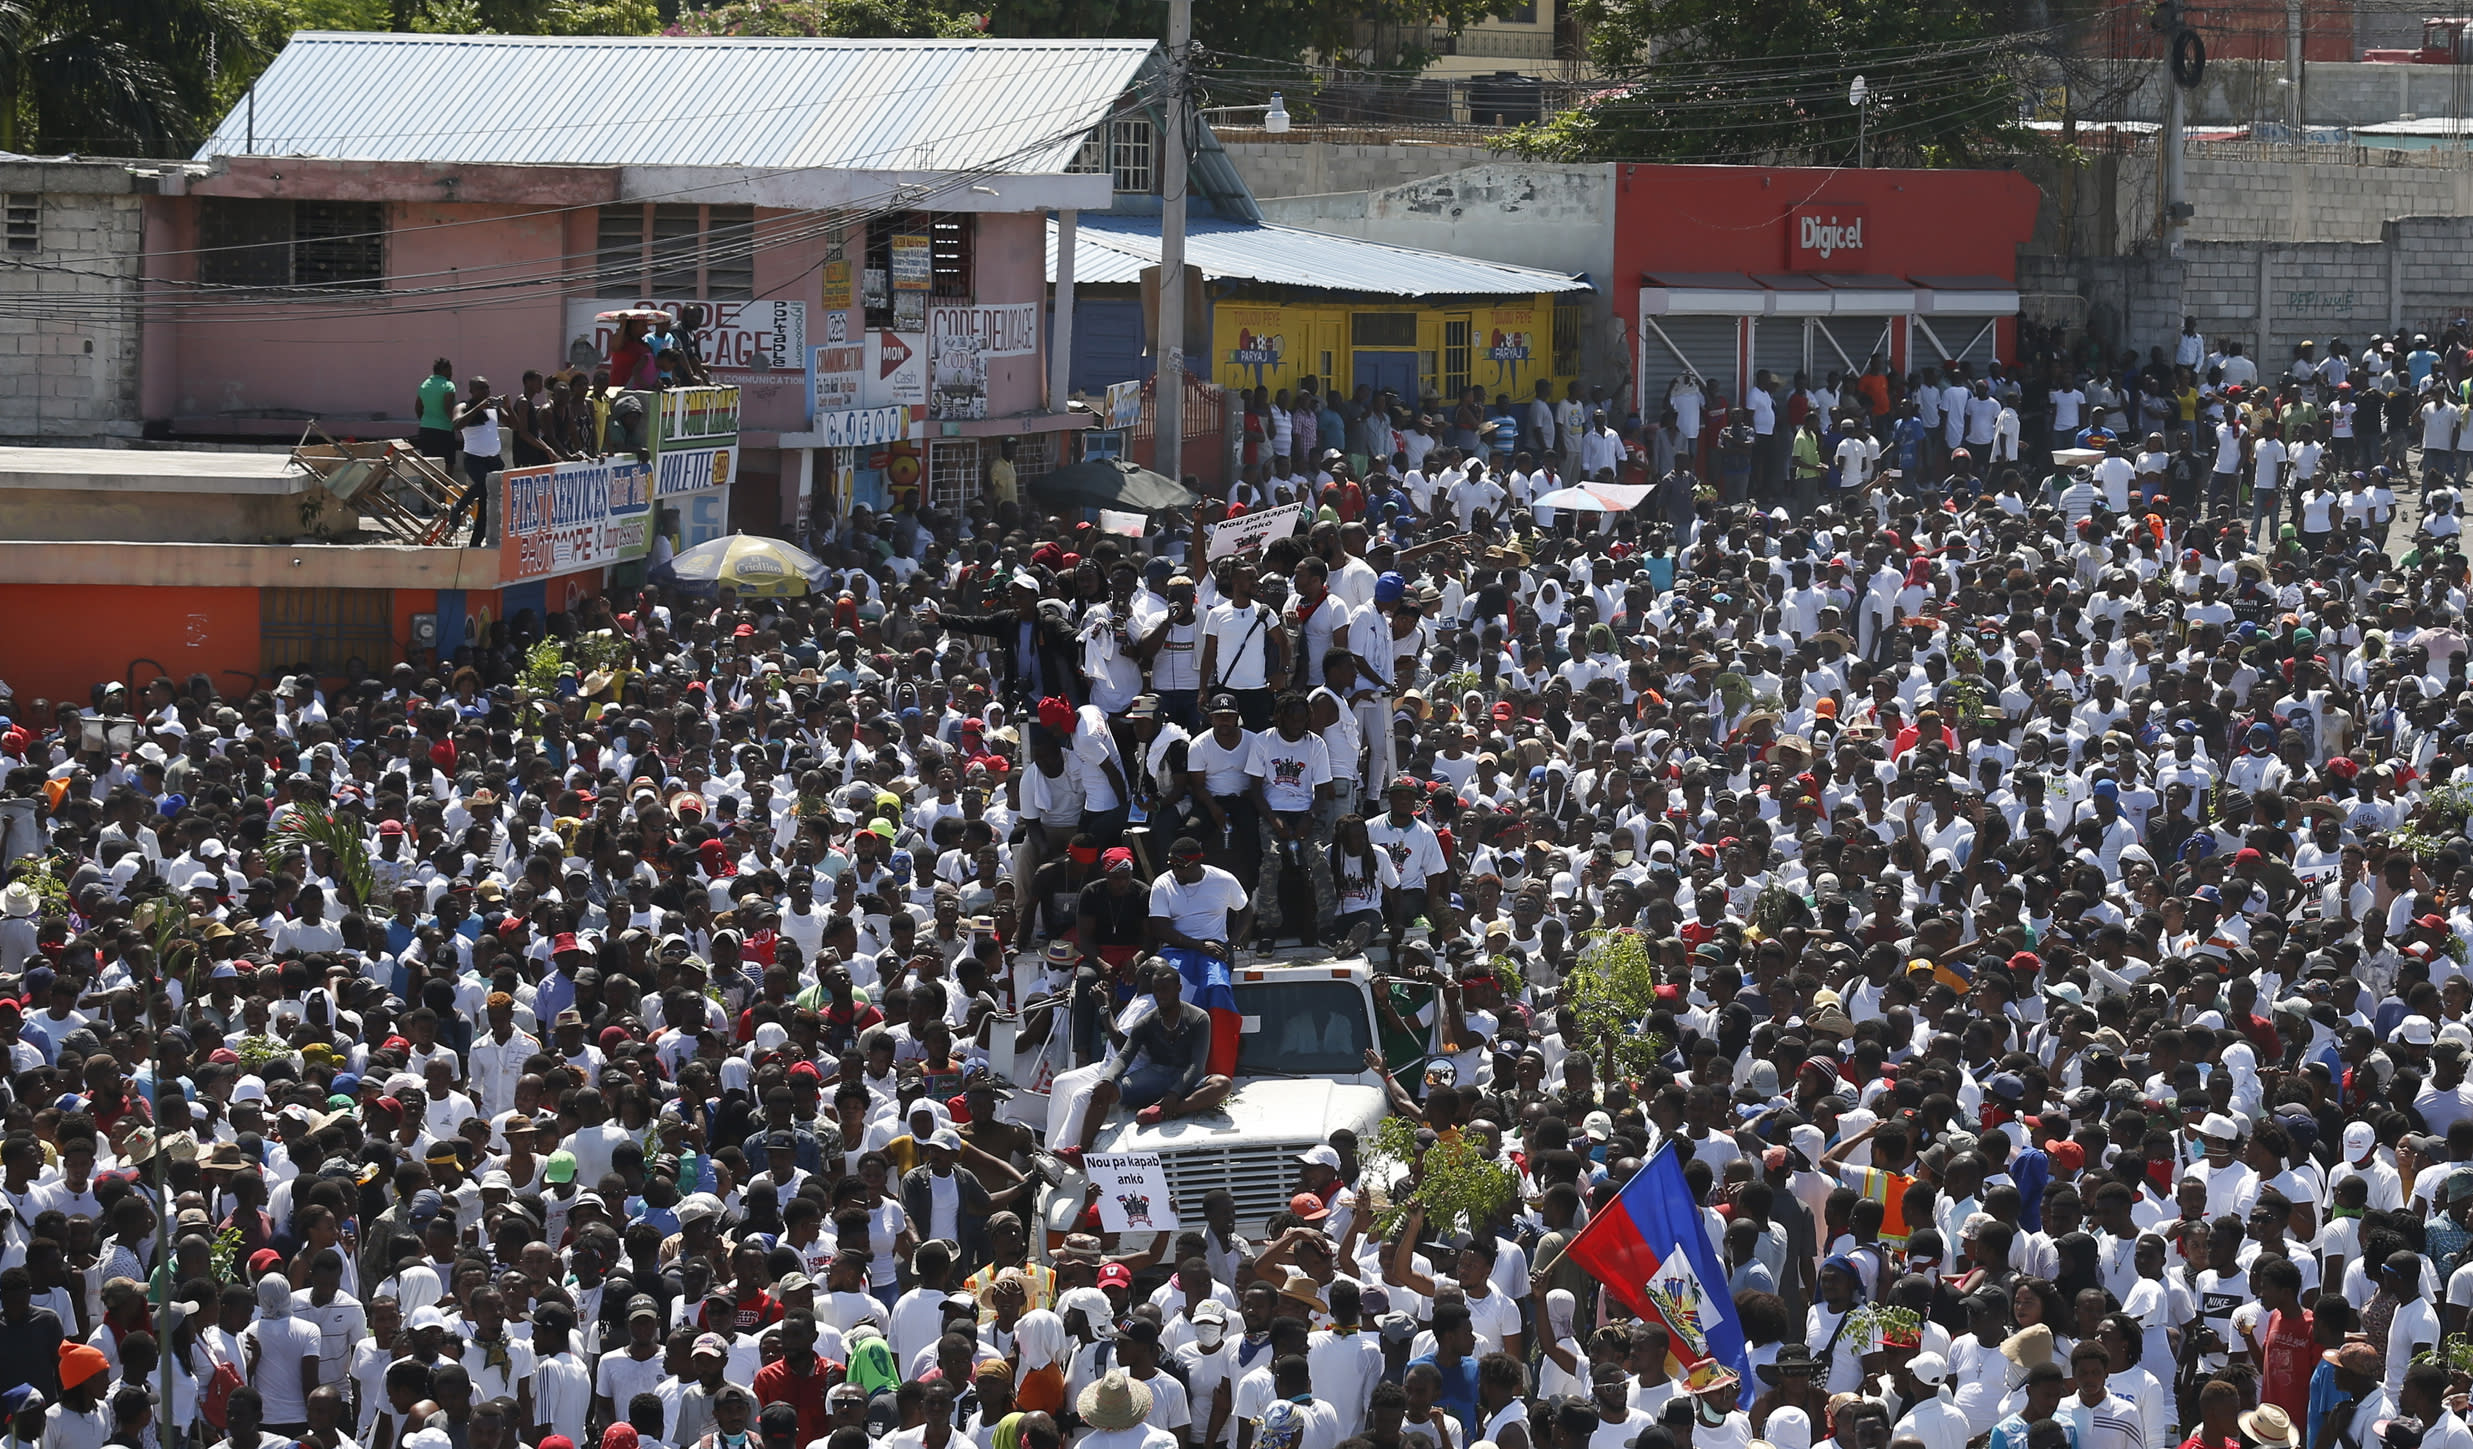 Protesters led by the art community demand the resignation of Haitian President Jovenel Moise as they march through Port-au-Prince, Haiti, Sunday, Oct. 13, 2019. Protests have paralyzed the country for nearly a month, shuttering businesses and schools. (AP Photo/Rebecca Blackwell)